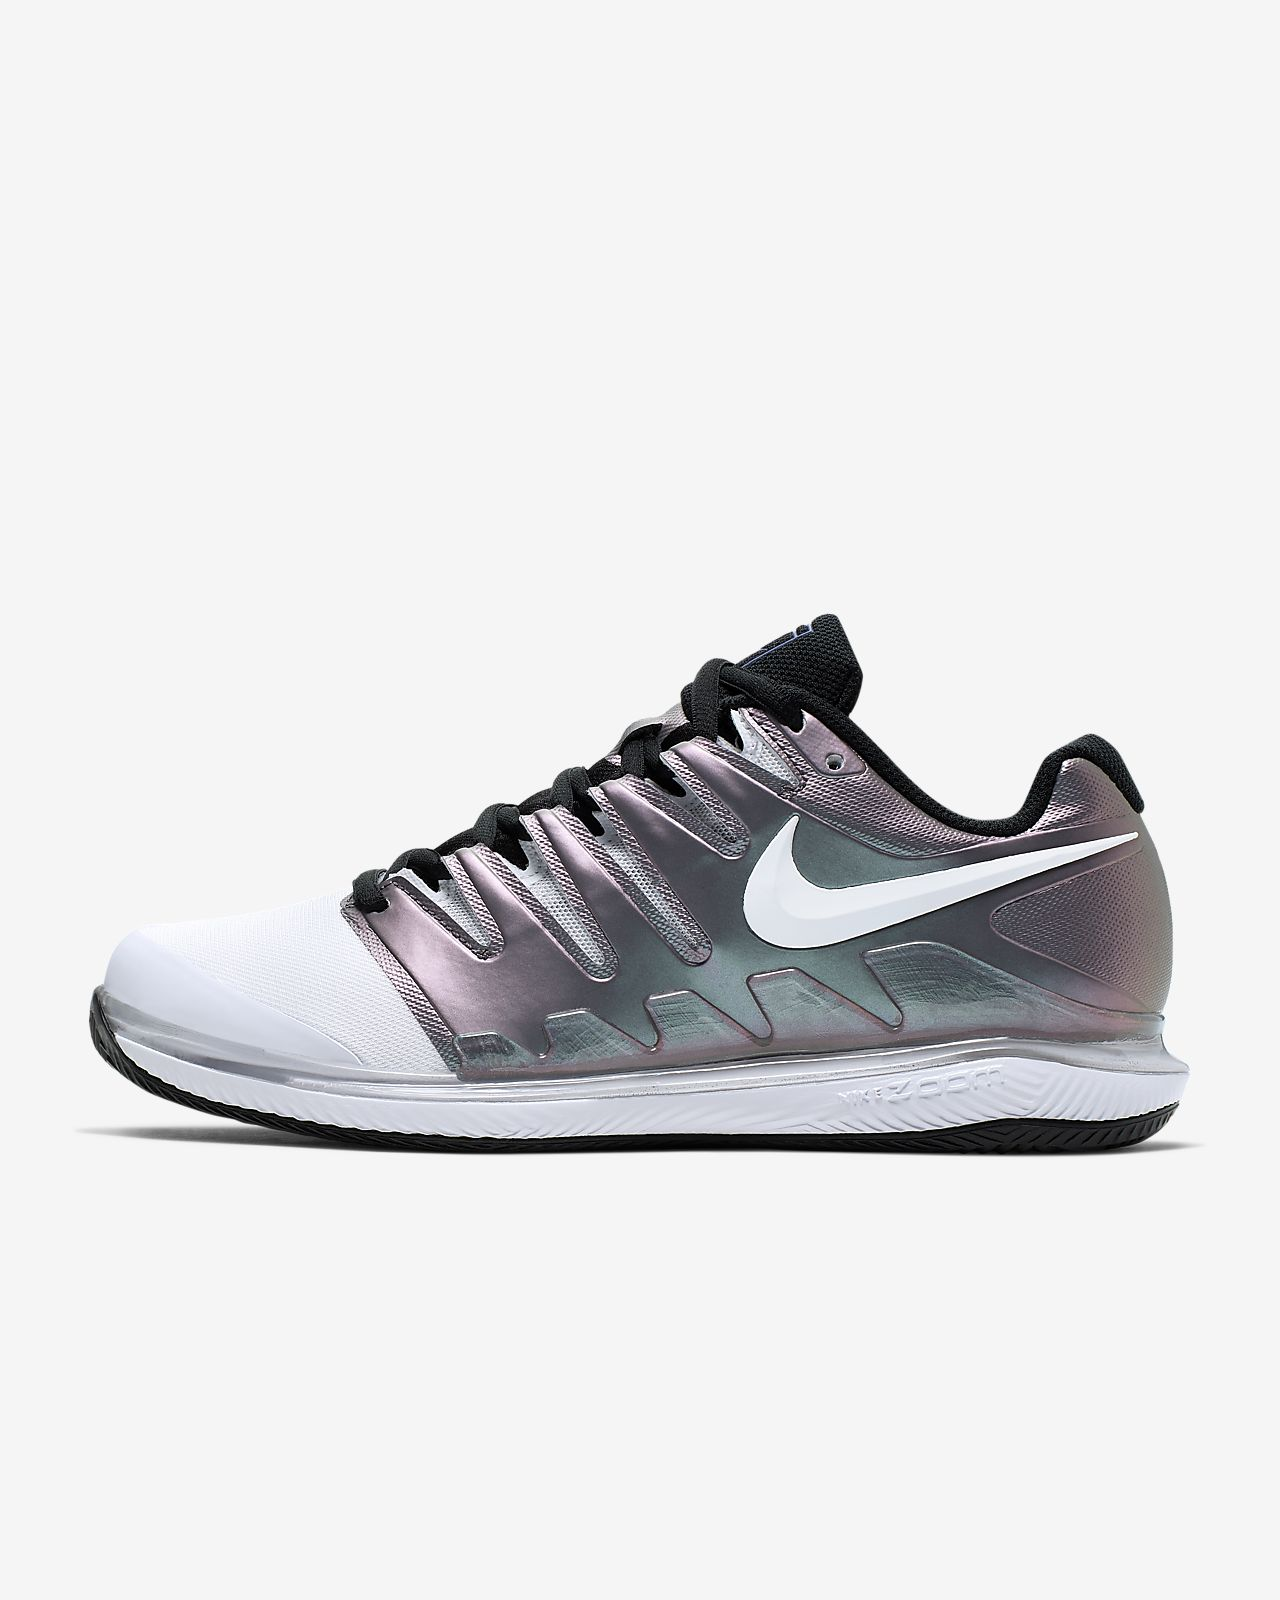 NikeCourt Air Zoom Vapor X Women's Clay Tennis Shoe. Nike LU